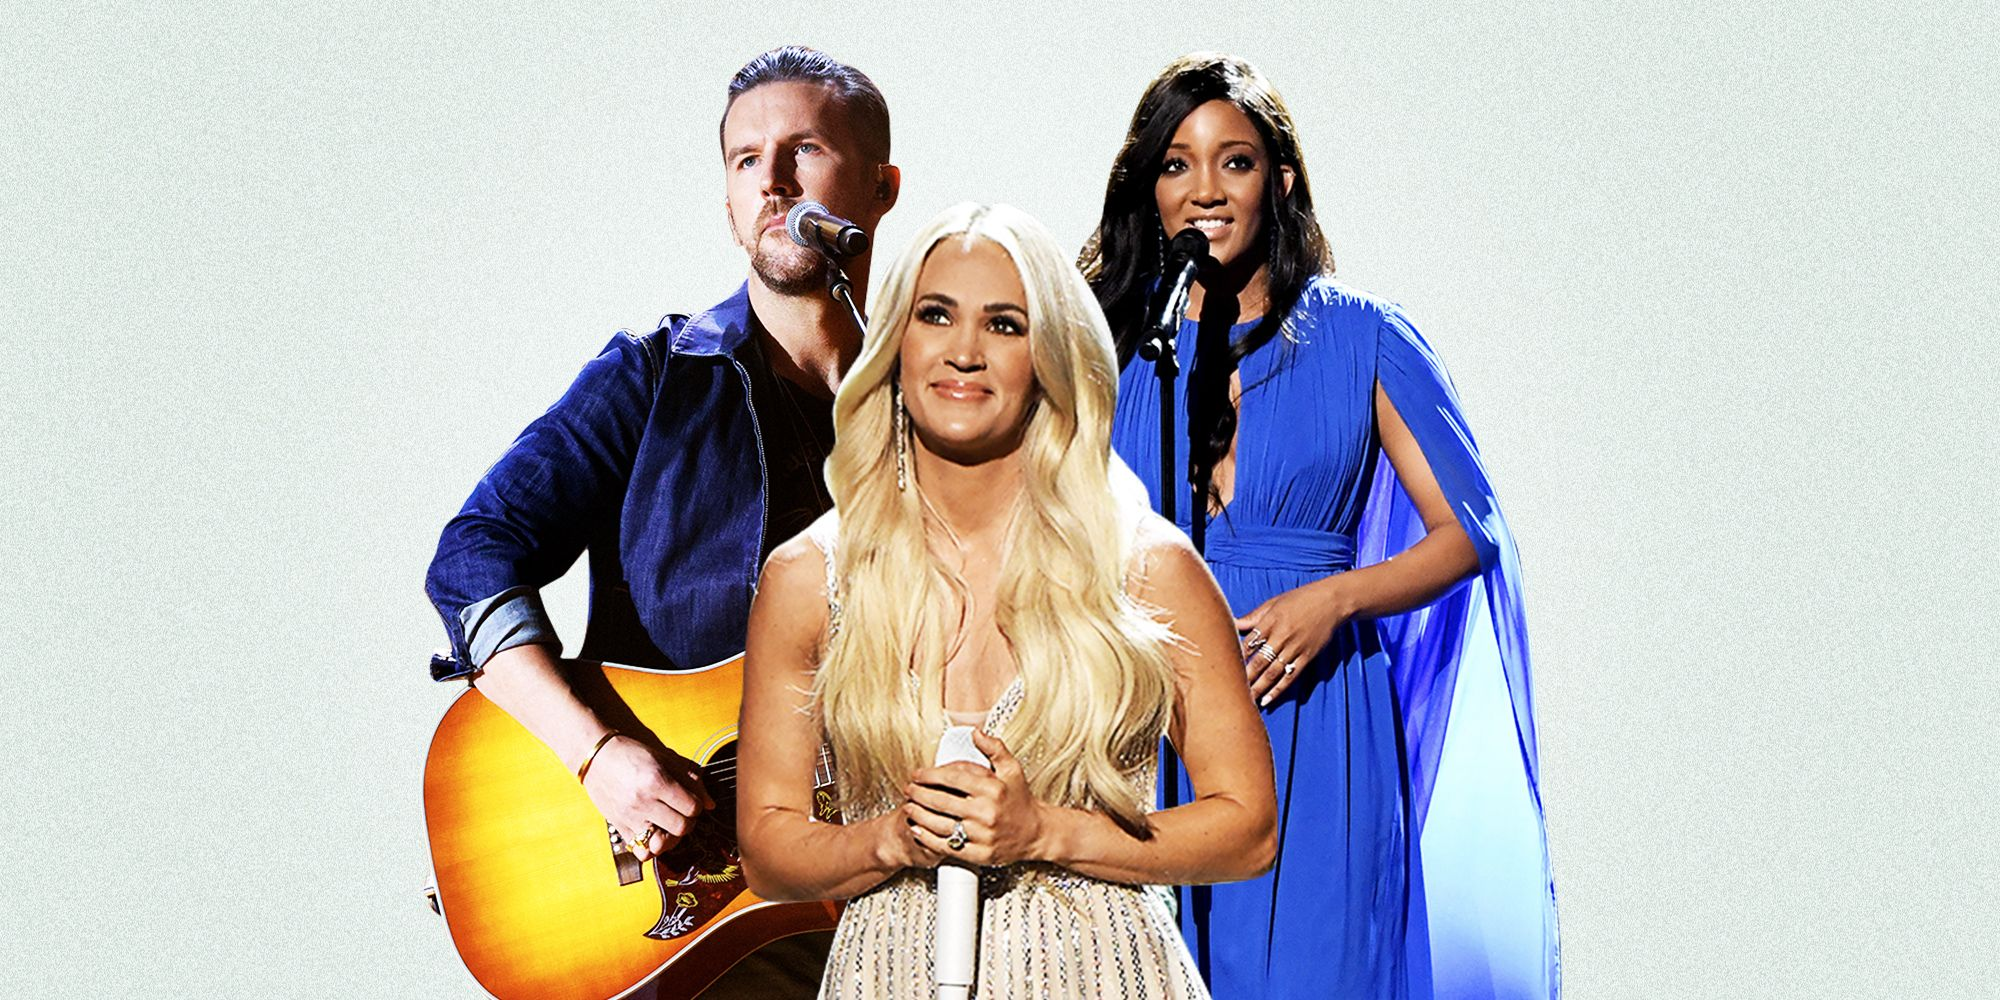 The 2021 ACM Awards: The Best and Worst Performances Show Country Music in Transition